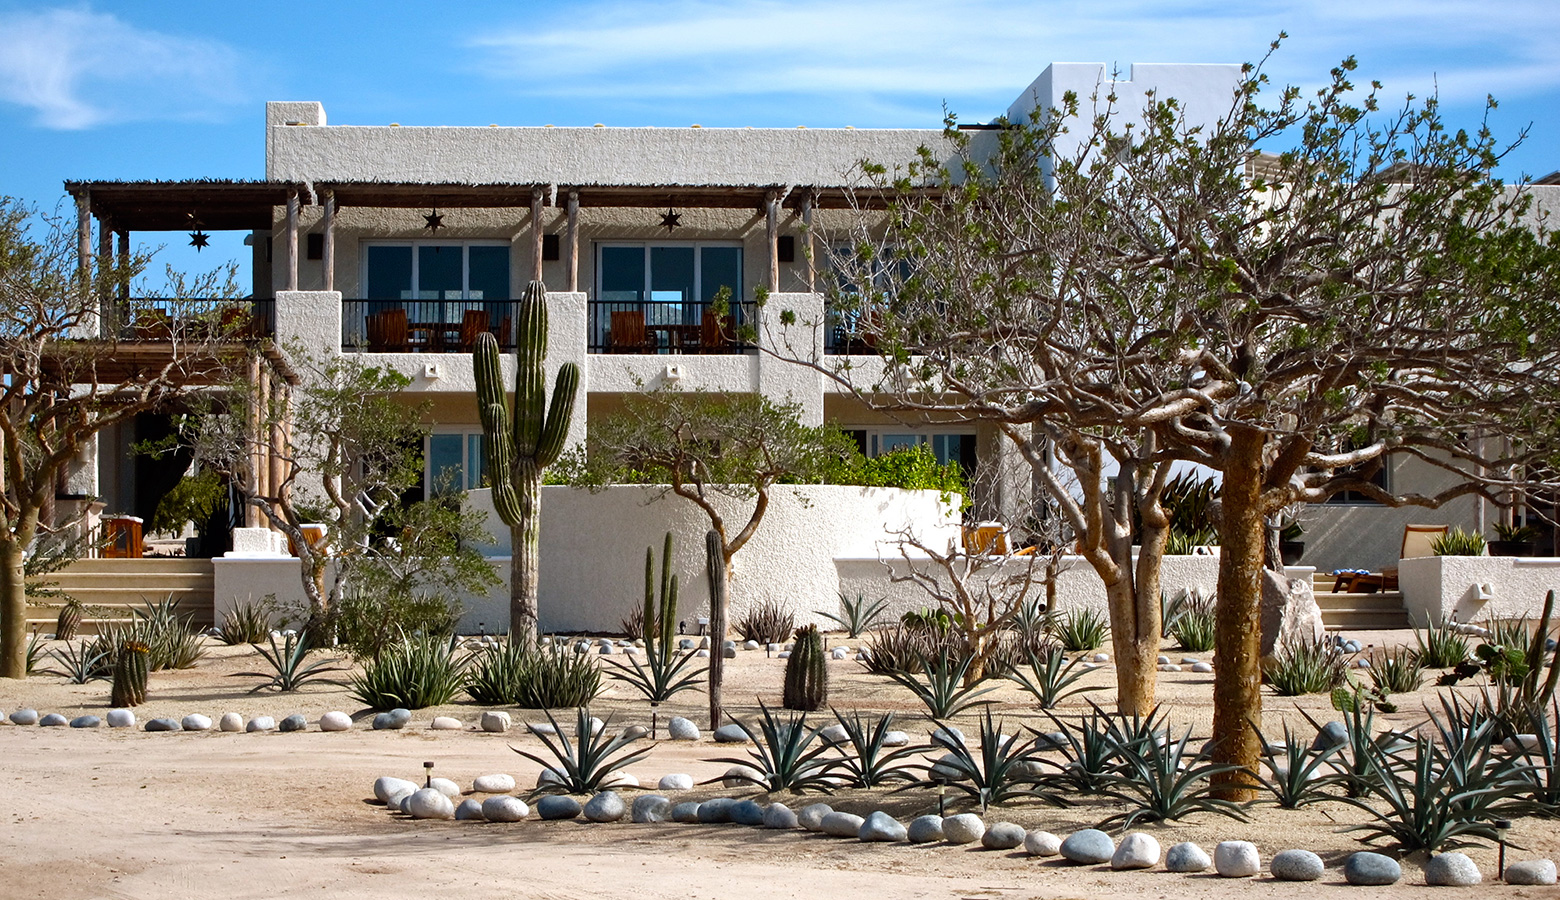 Desert Gardens surround our Community Building - Yoga Retreat - Mexico